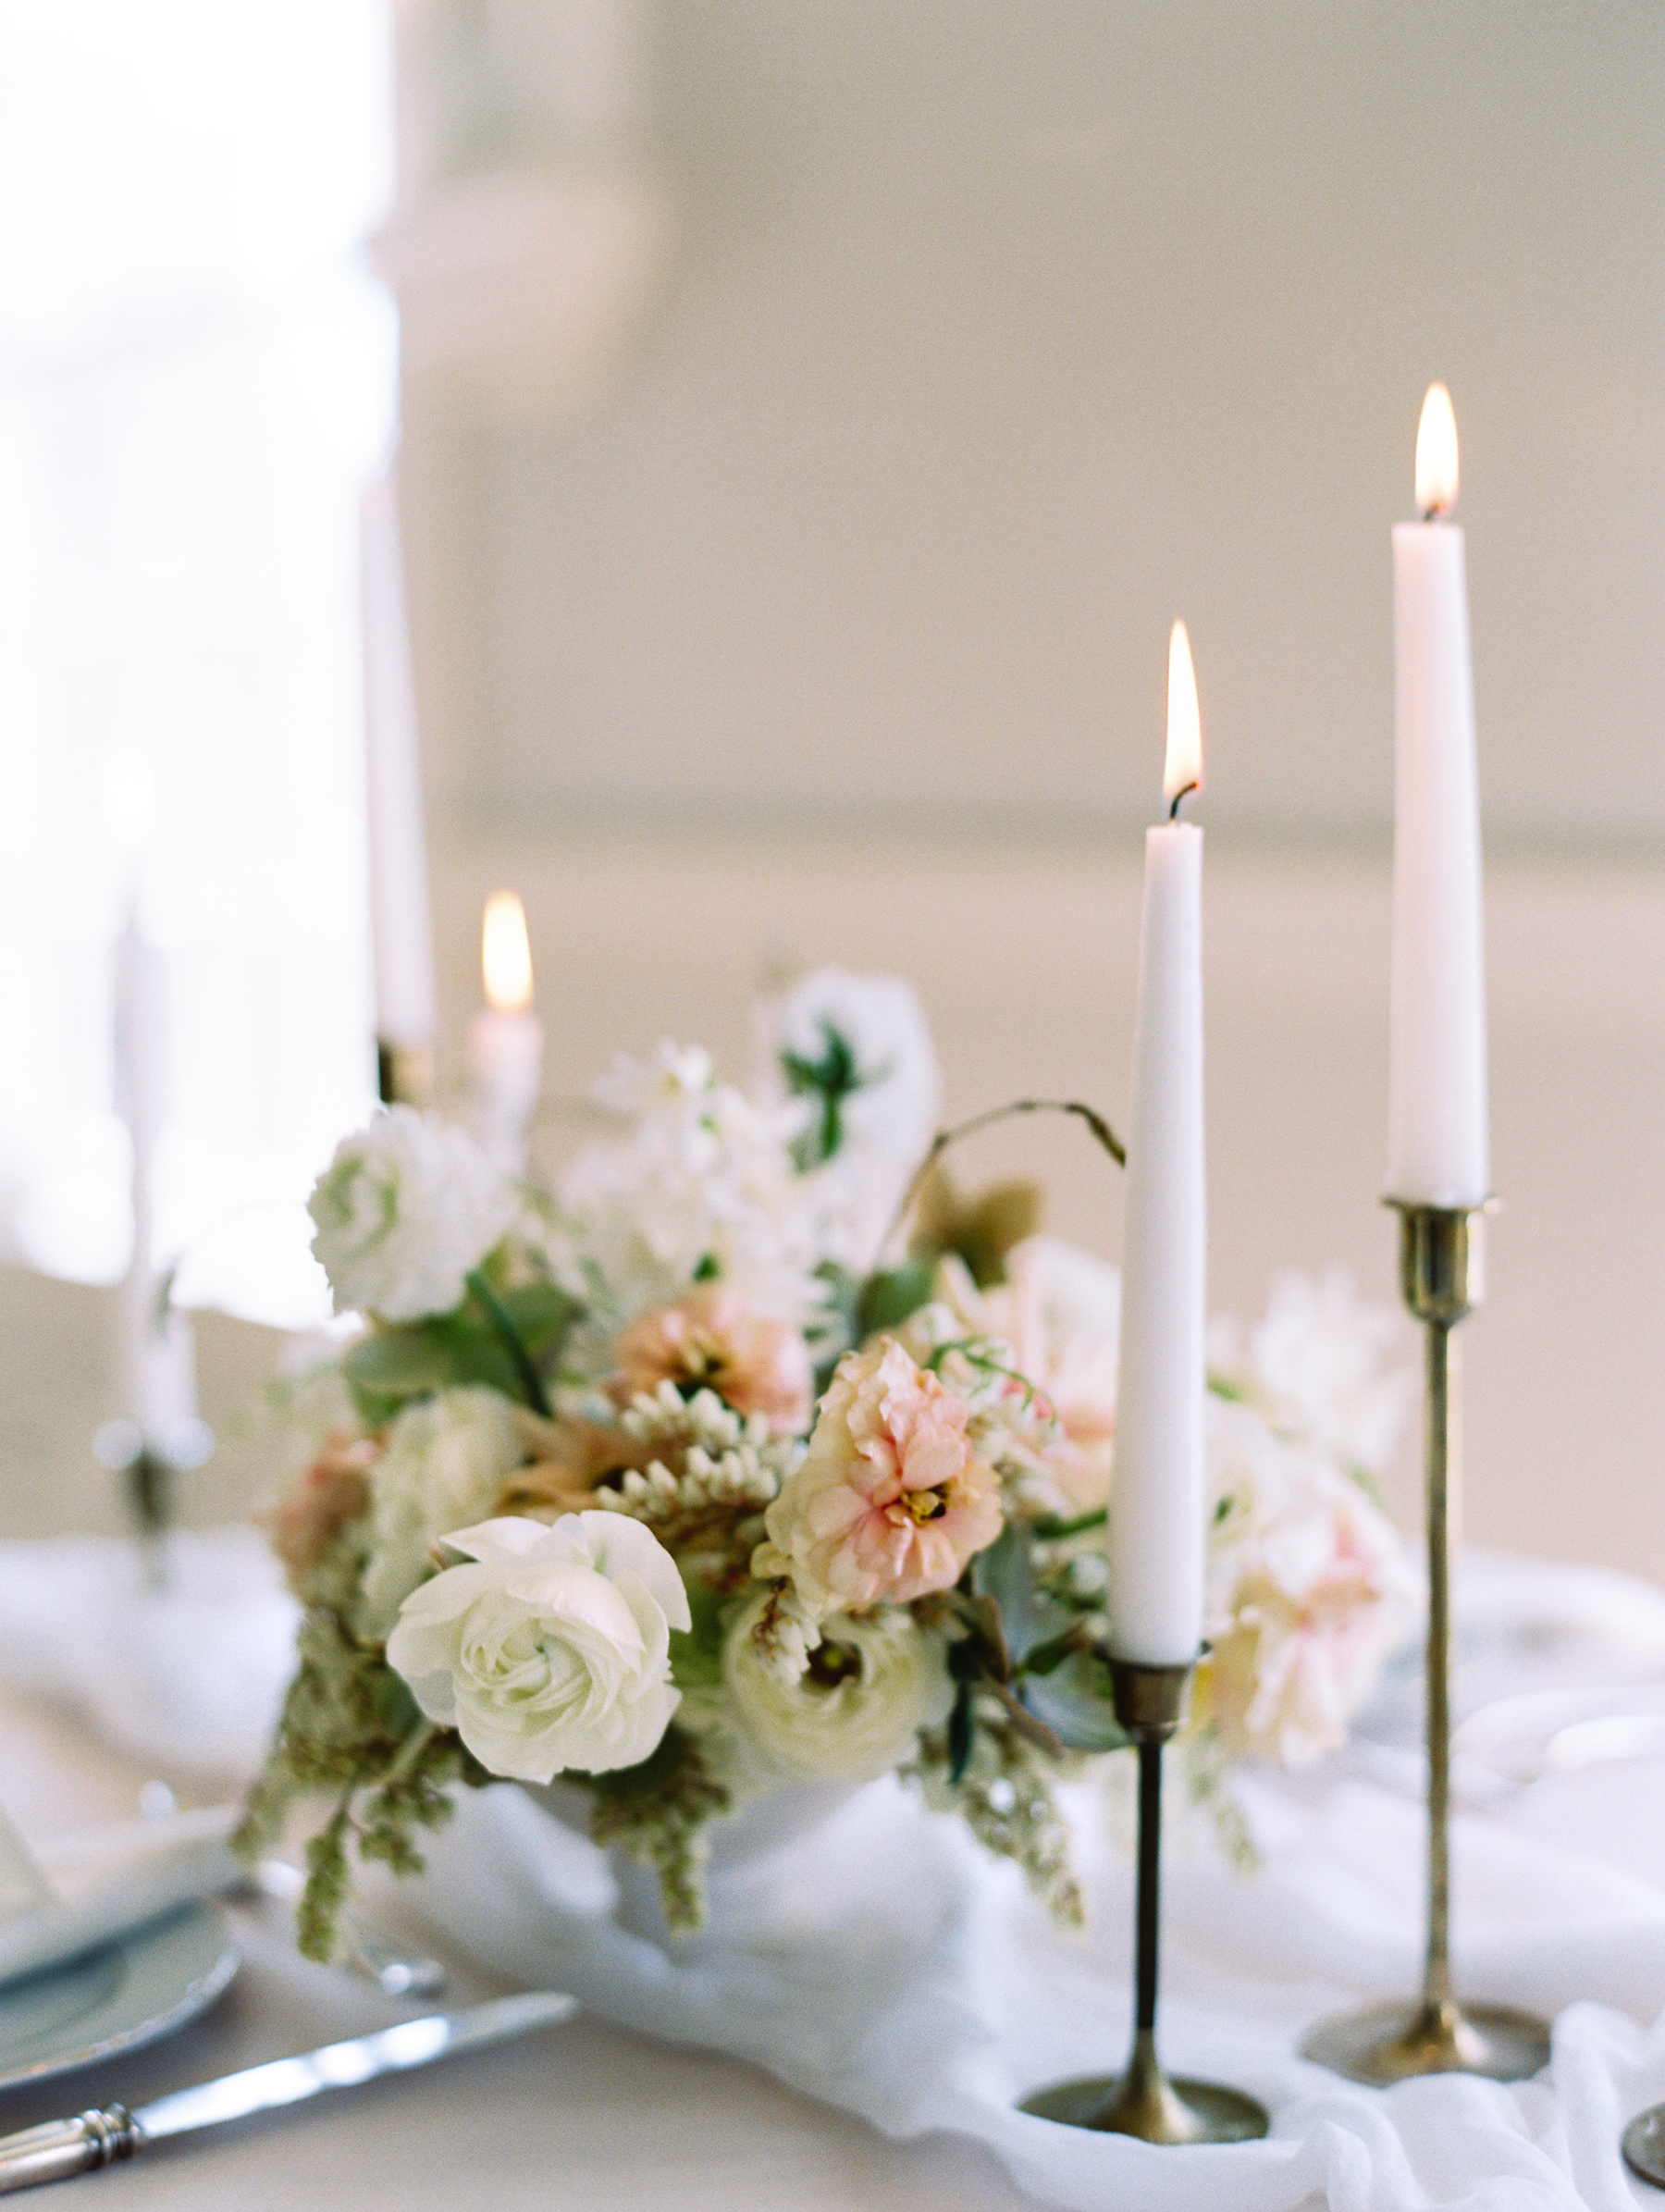 Elegant Centerpiece with Taper Candles